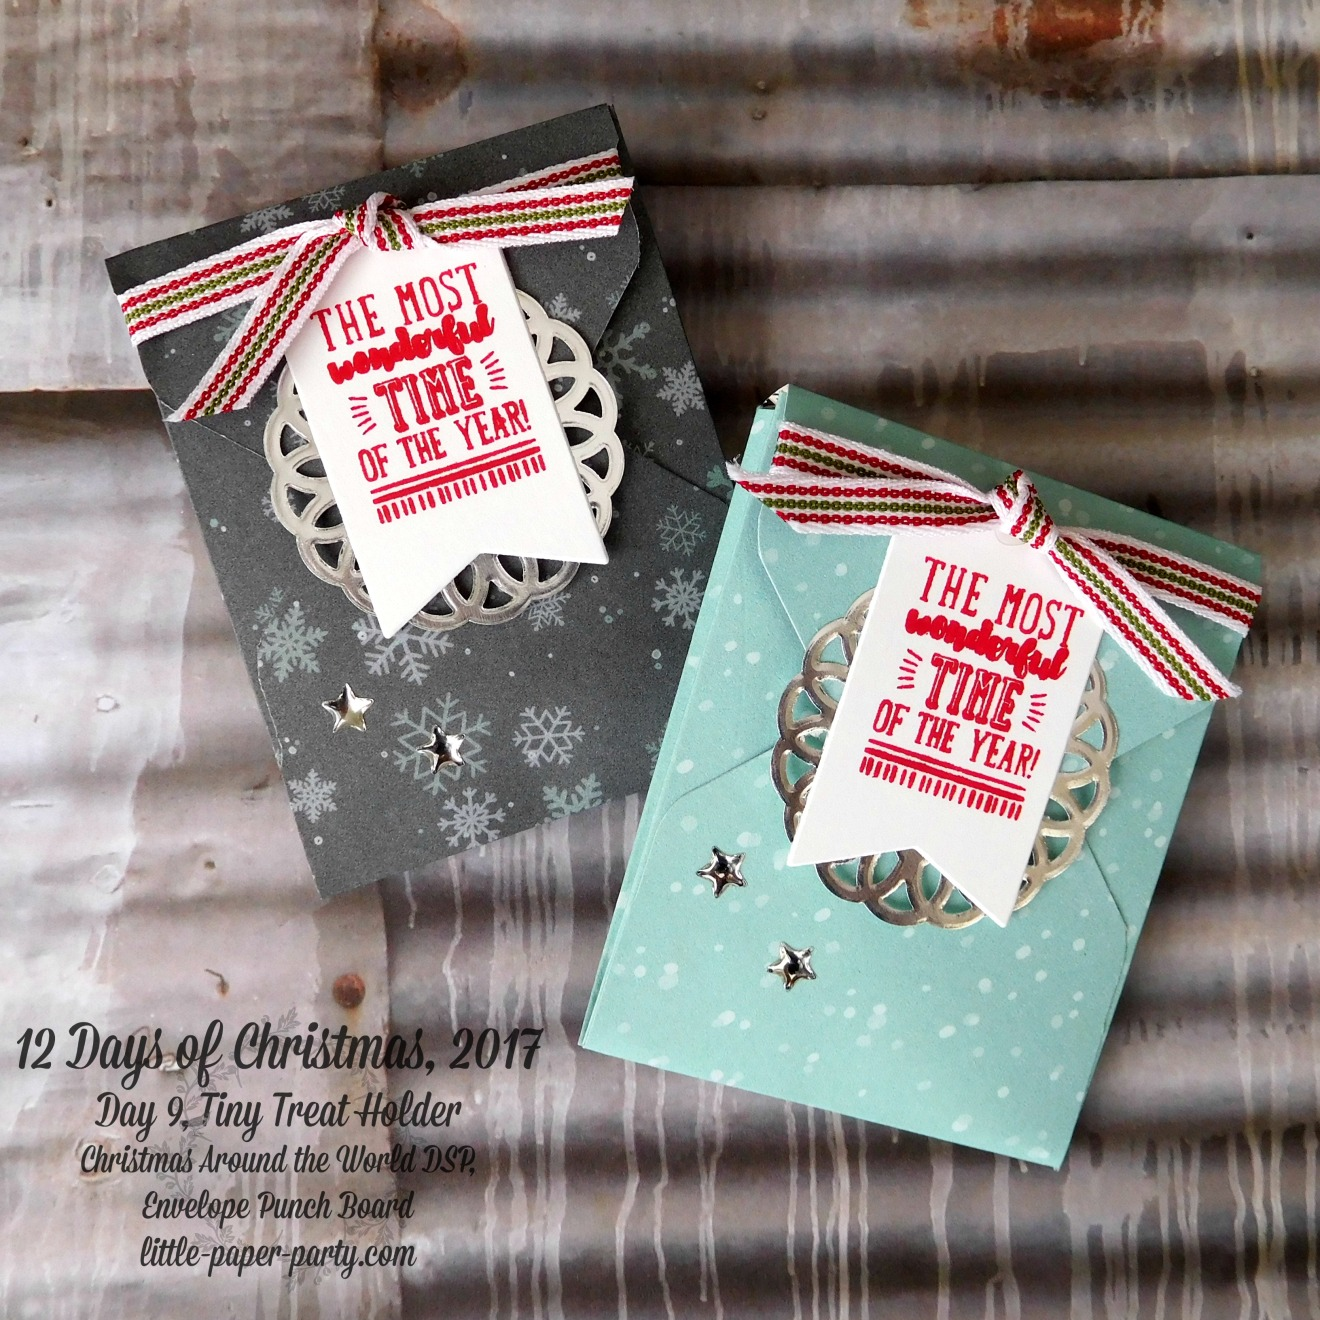 Little Paper Party, 12 Days of Christmas 2017, Brightly Lit Christmas, Christmas Around the World DSP, Envelope Punch Board, #4.jpg